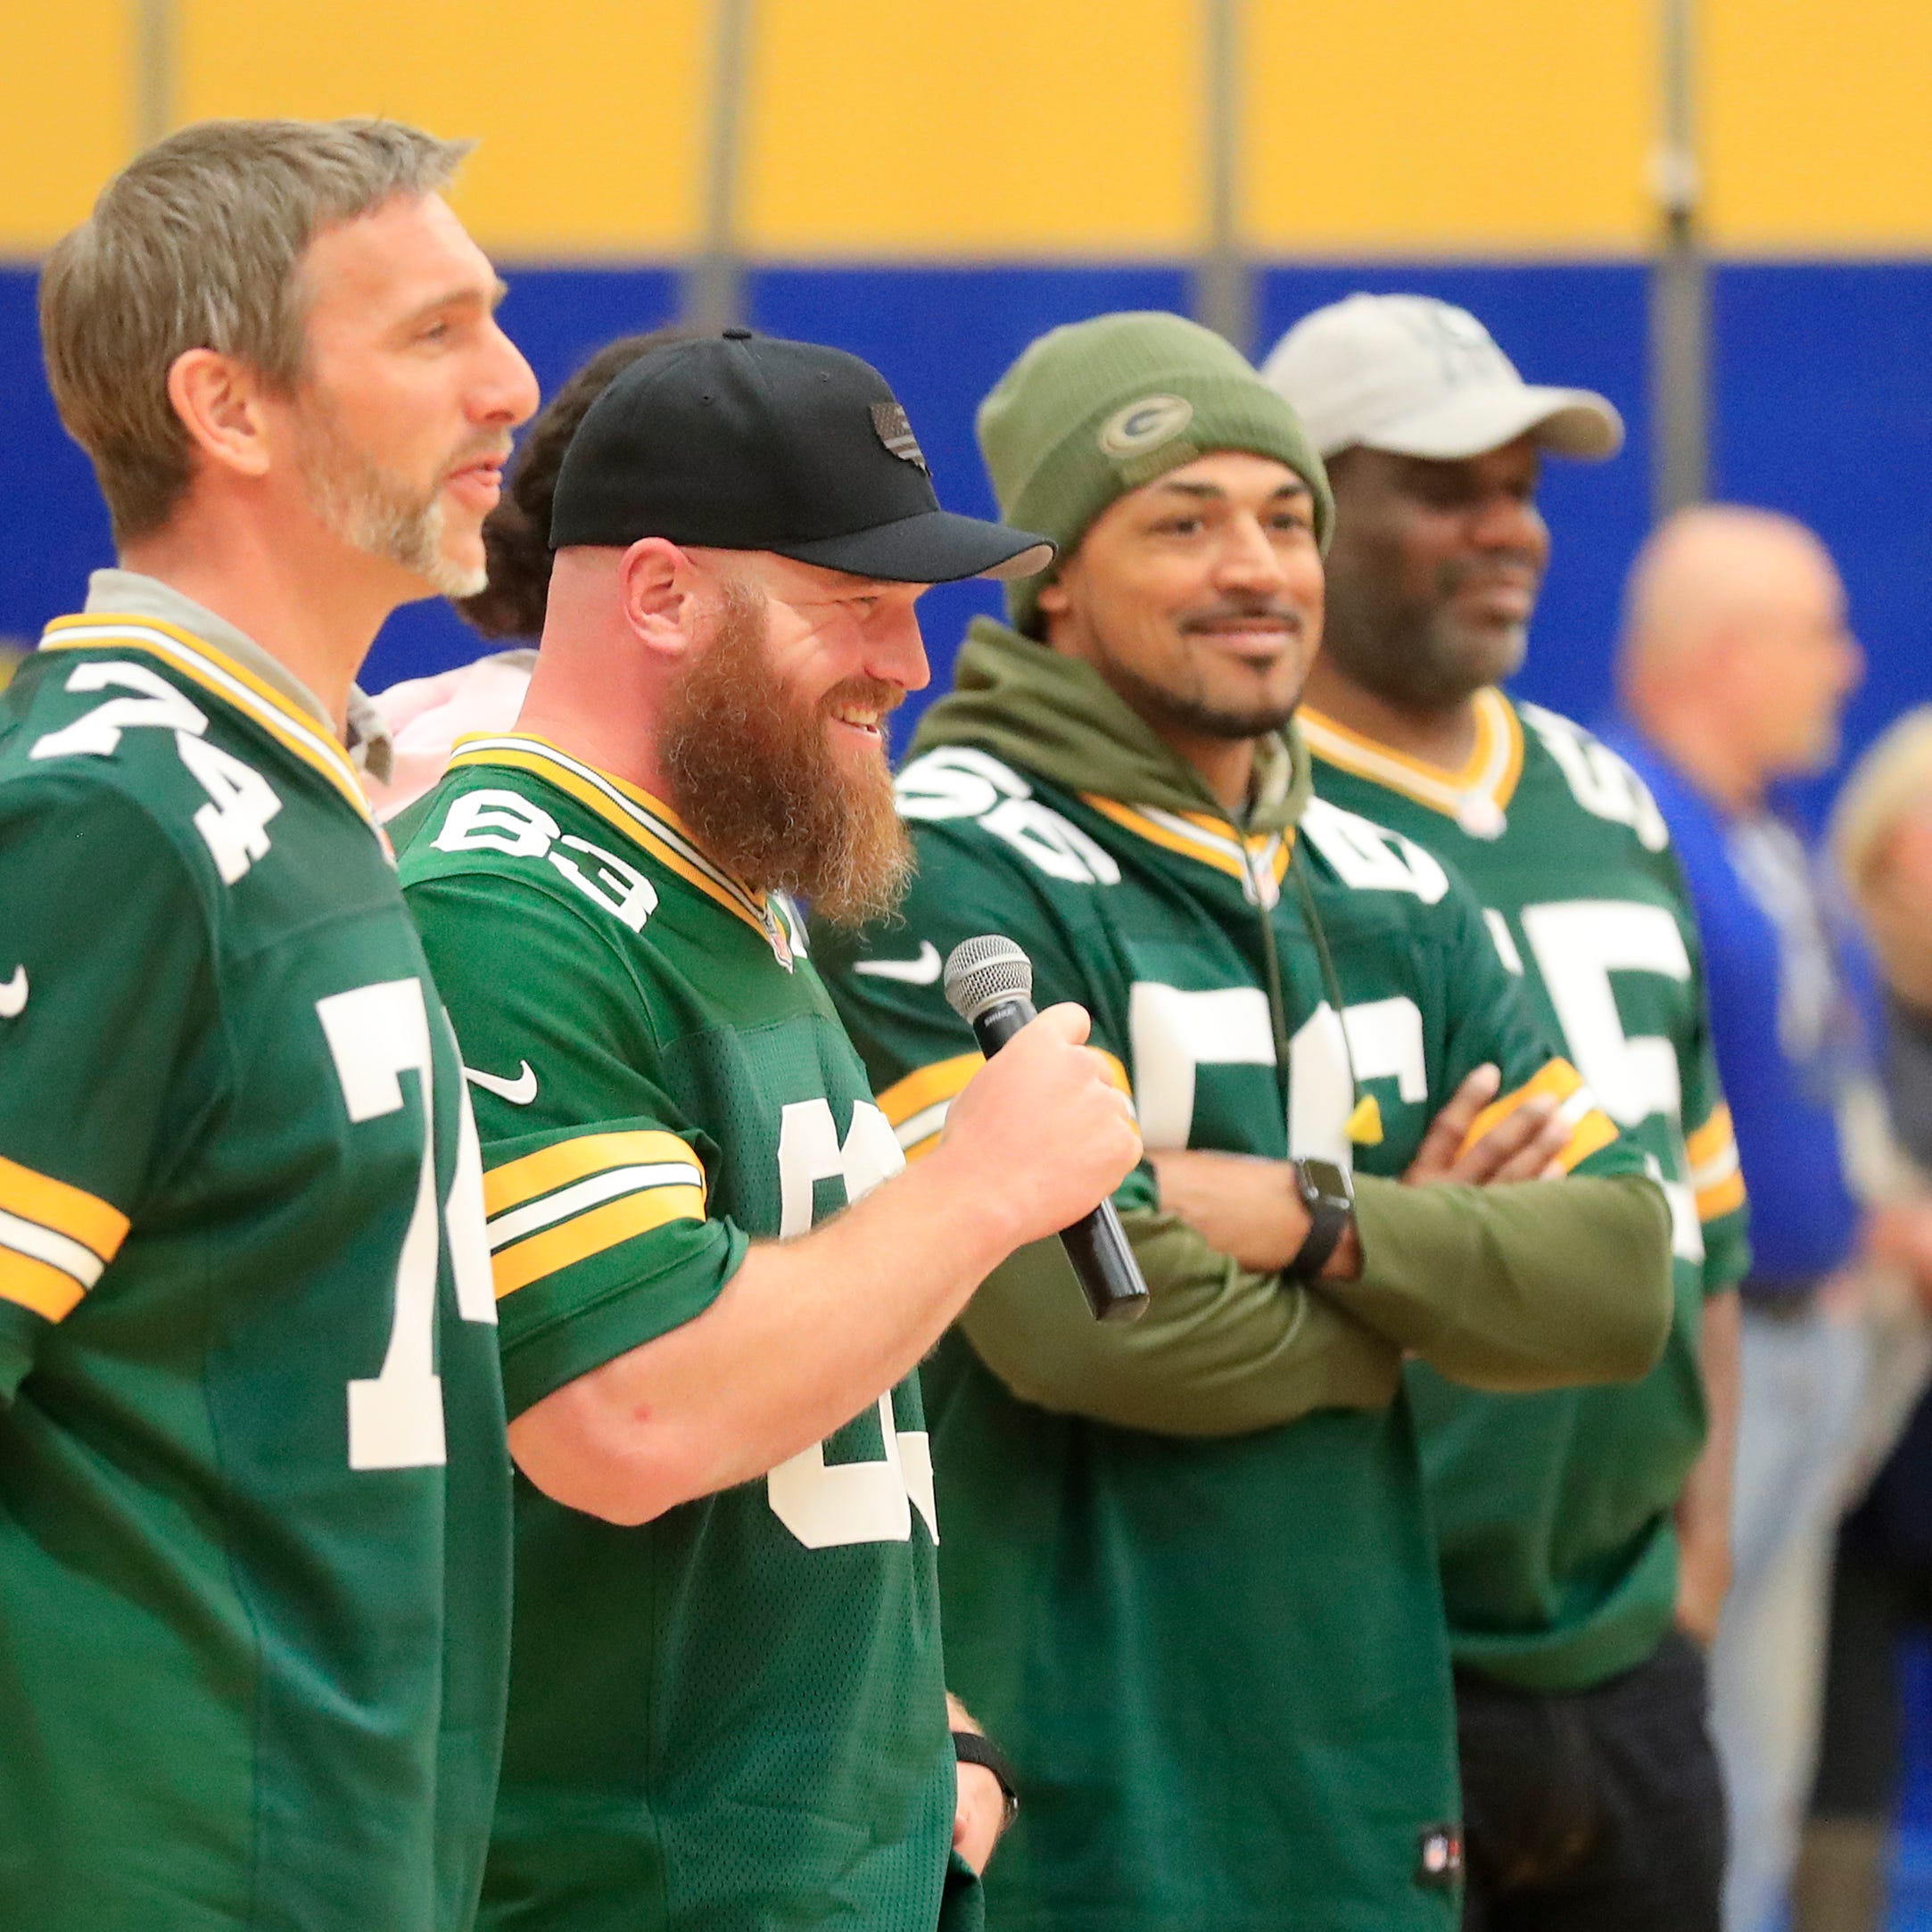 Packers alumni have uplifting and pointed messages as Tailgate Tour begins